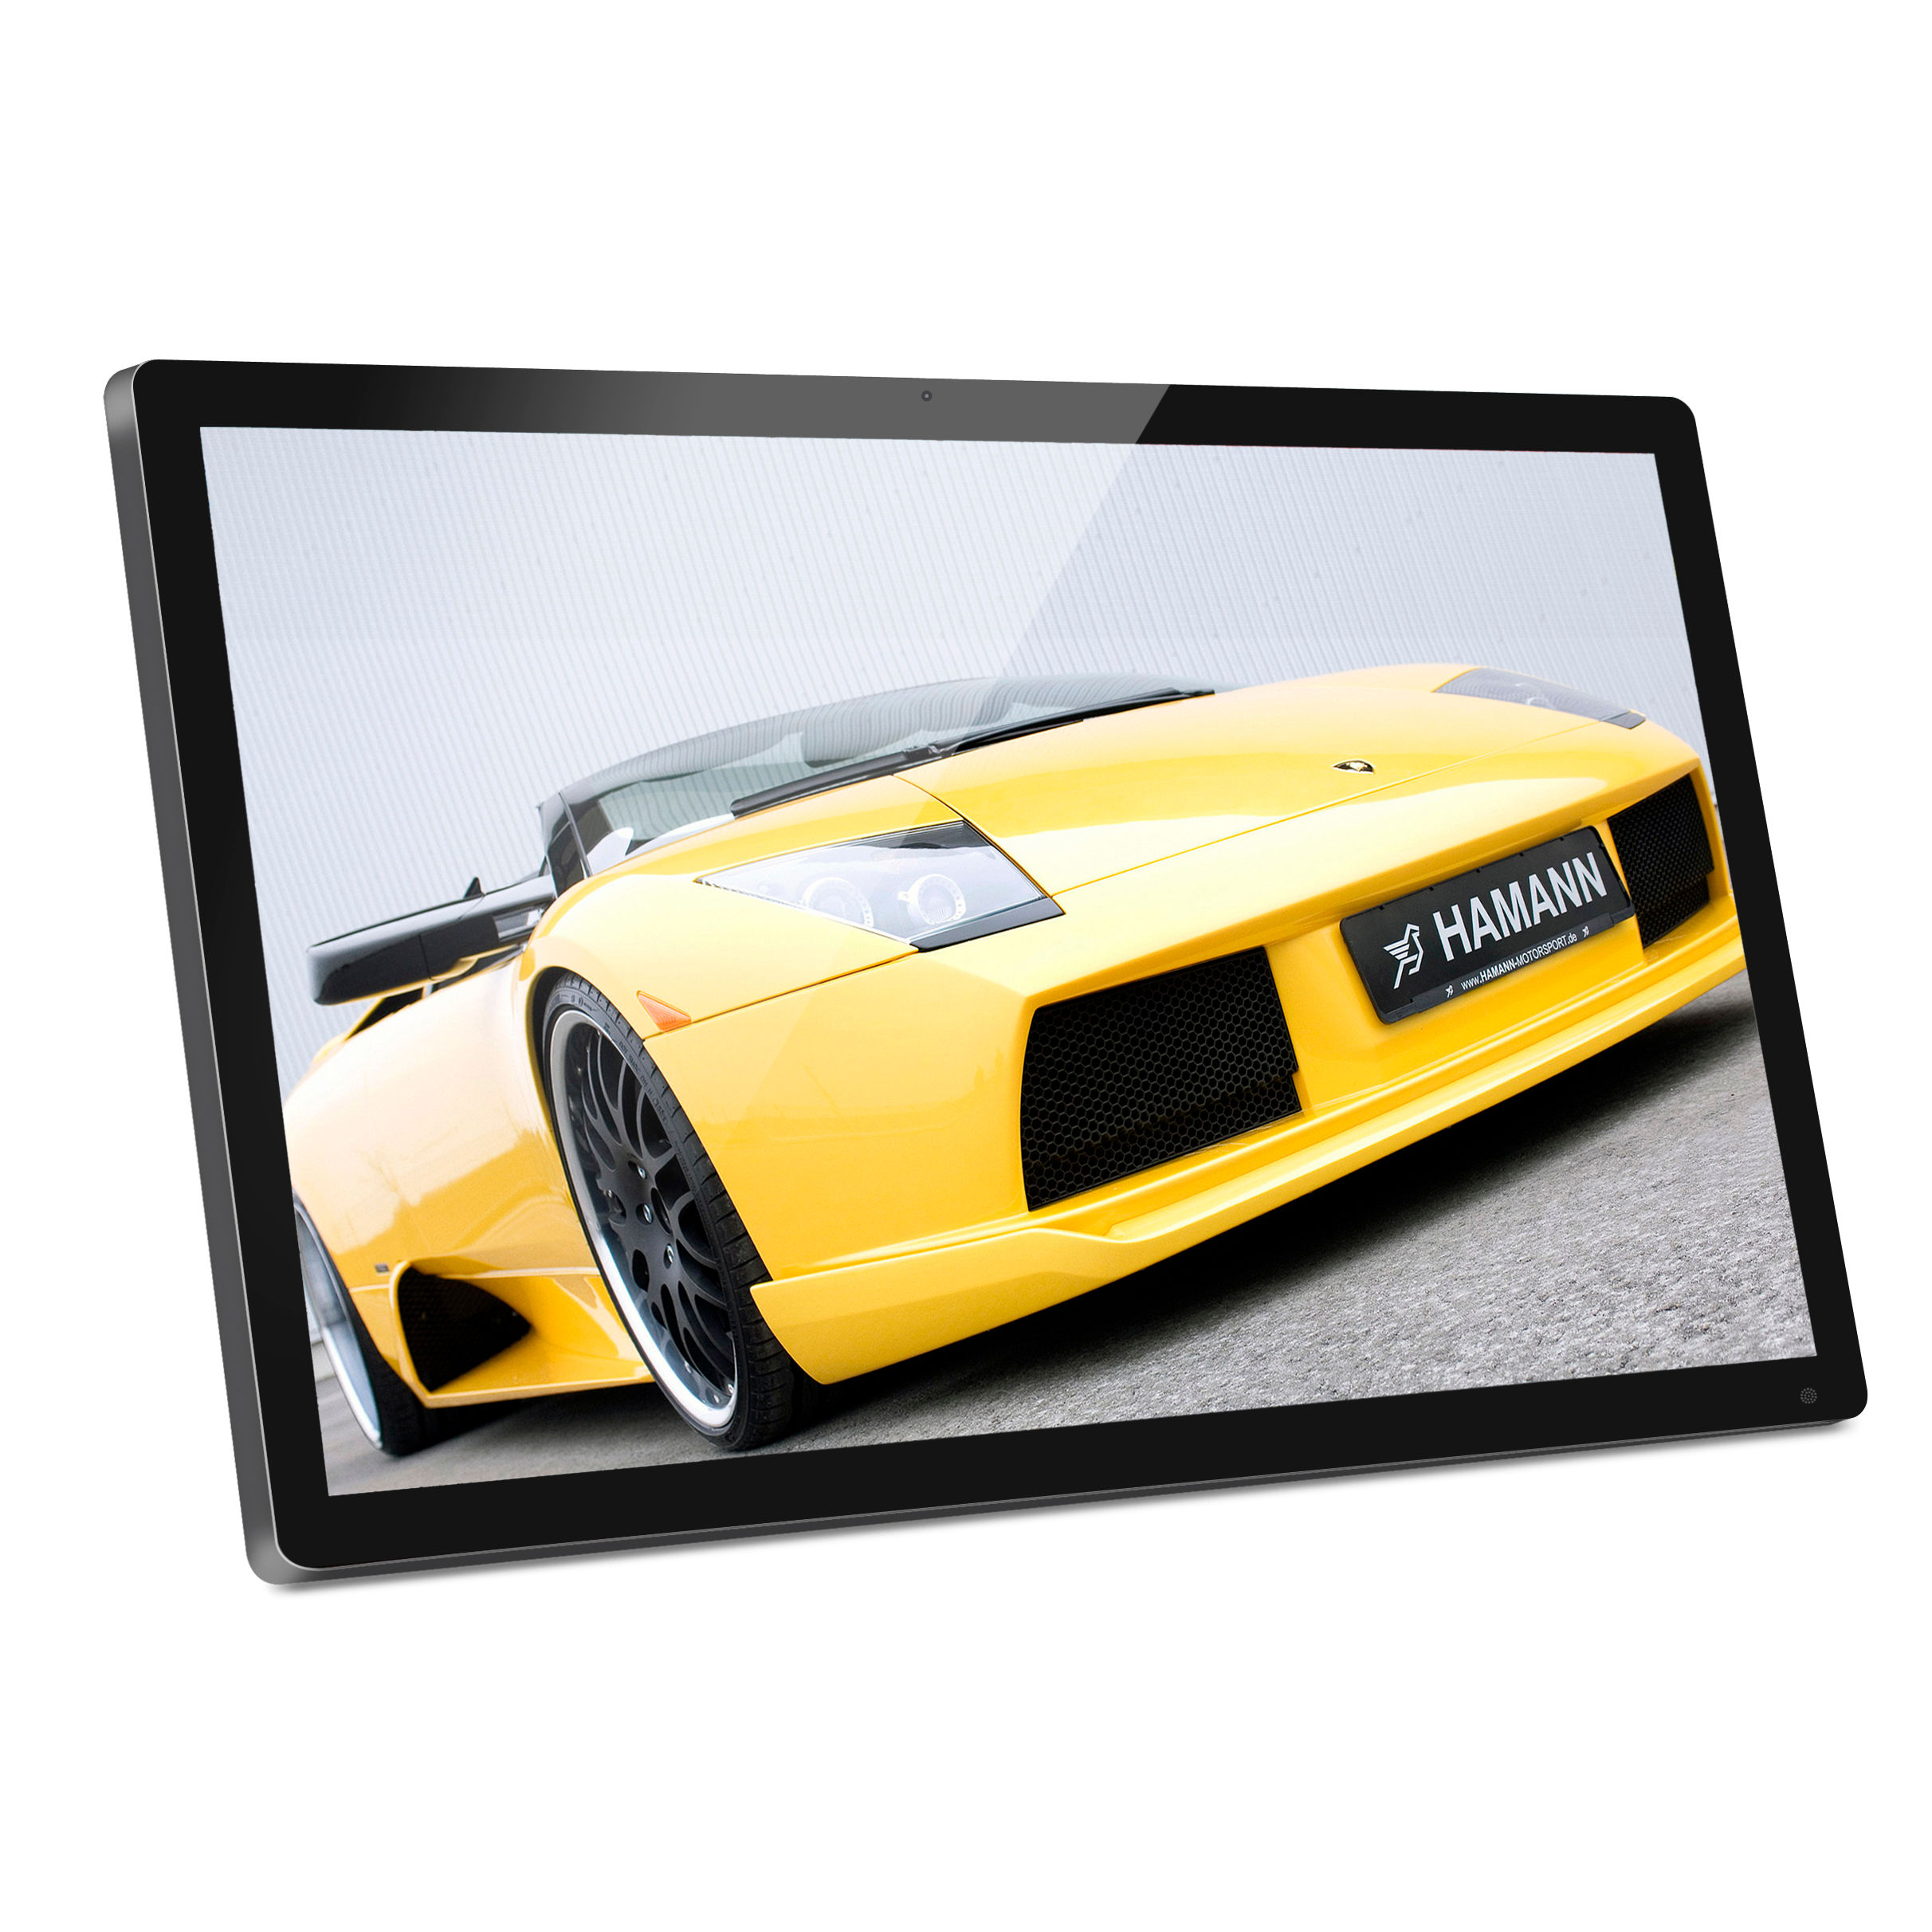 32 inch OEM LCD Touch Screen Monitor Manufacturers Capacitive Touch Commercial Display MSTV59 Controller